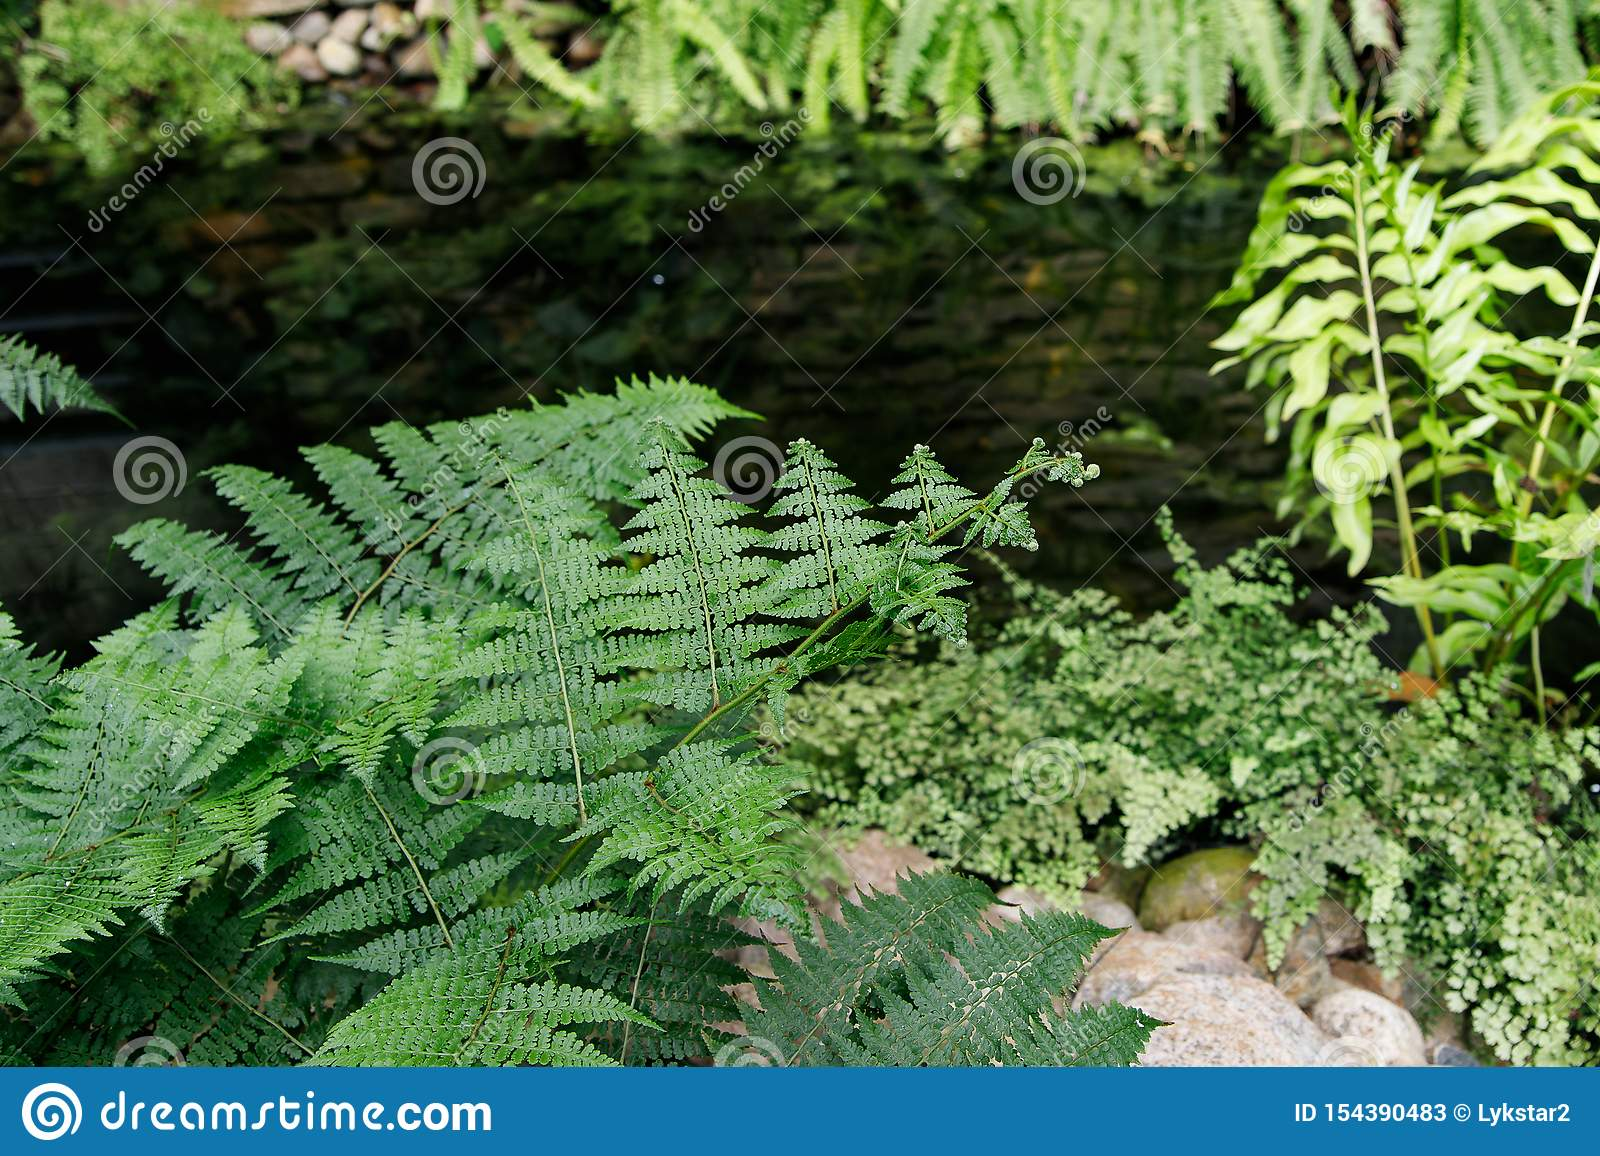 Tropical garden landscape. Fern leaves on the background of water